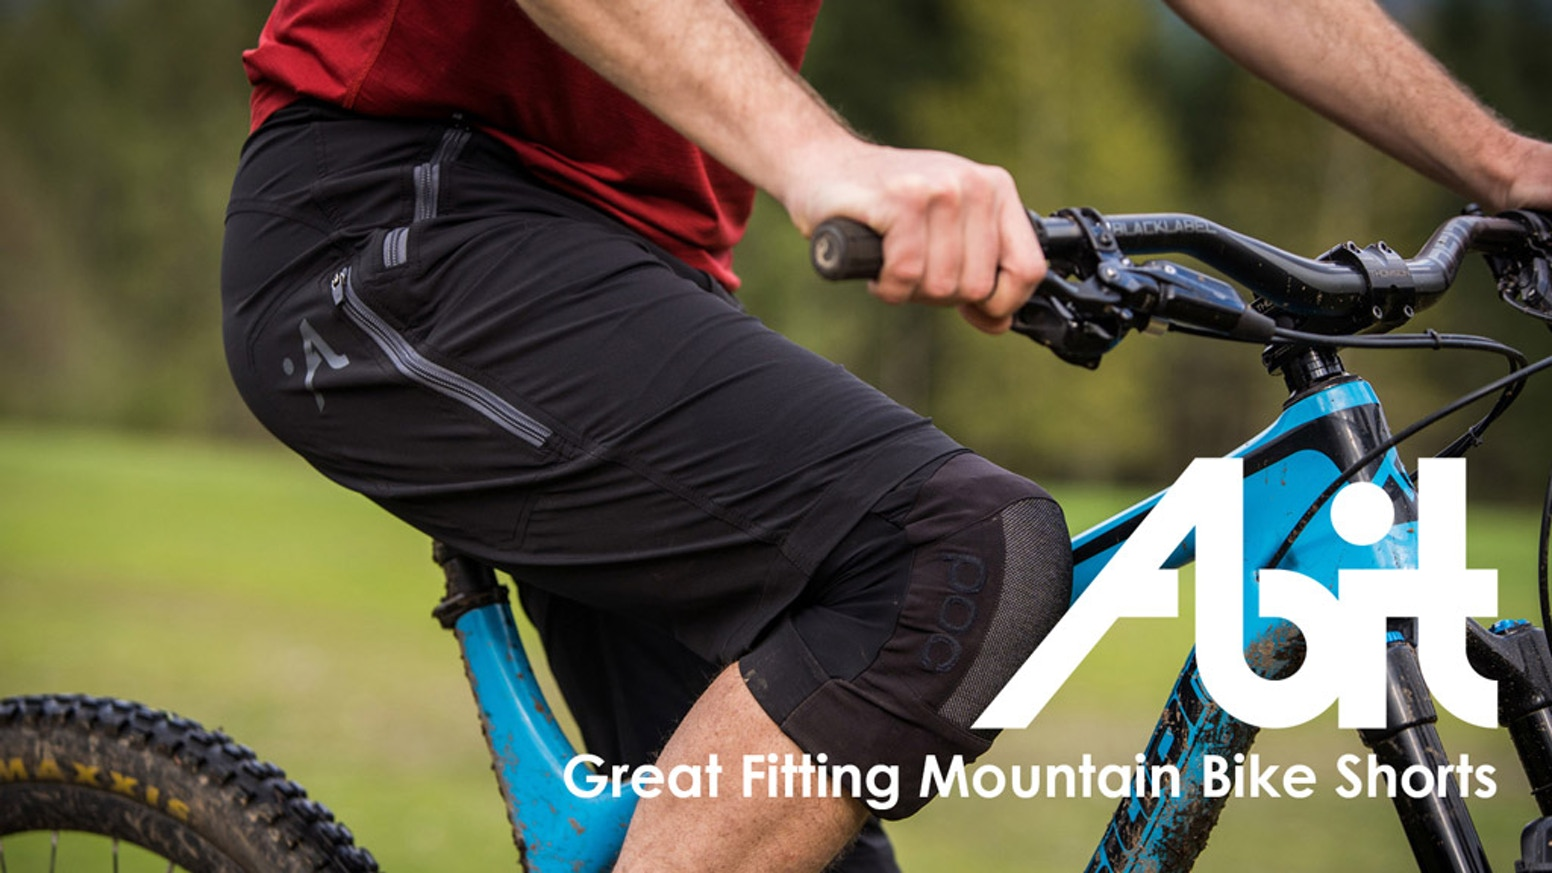 Great fitting, comfortable, durable enduro MTB shorts designed and proven on the rowdy trails of the PNW